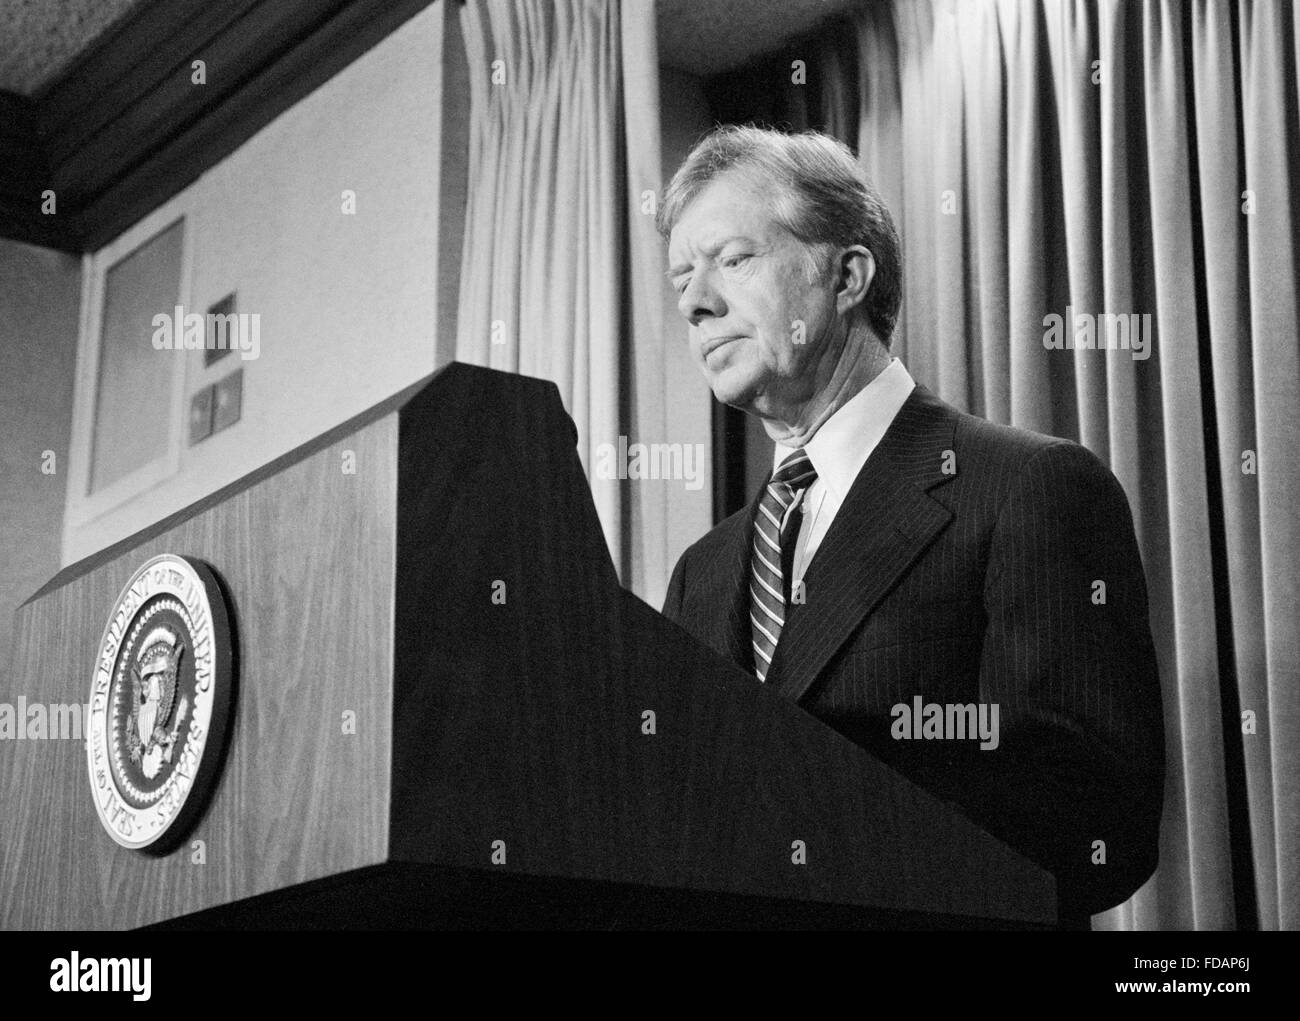 Jimmy Carter, 39th President of the USA, speaking to the press in April 1980 - Stock Image